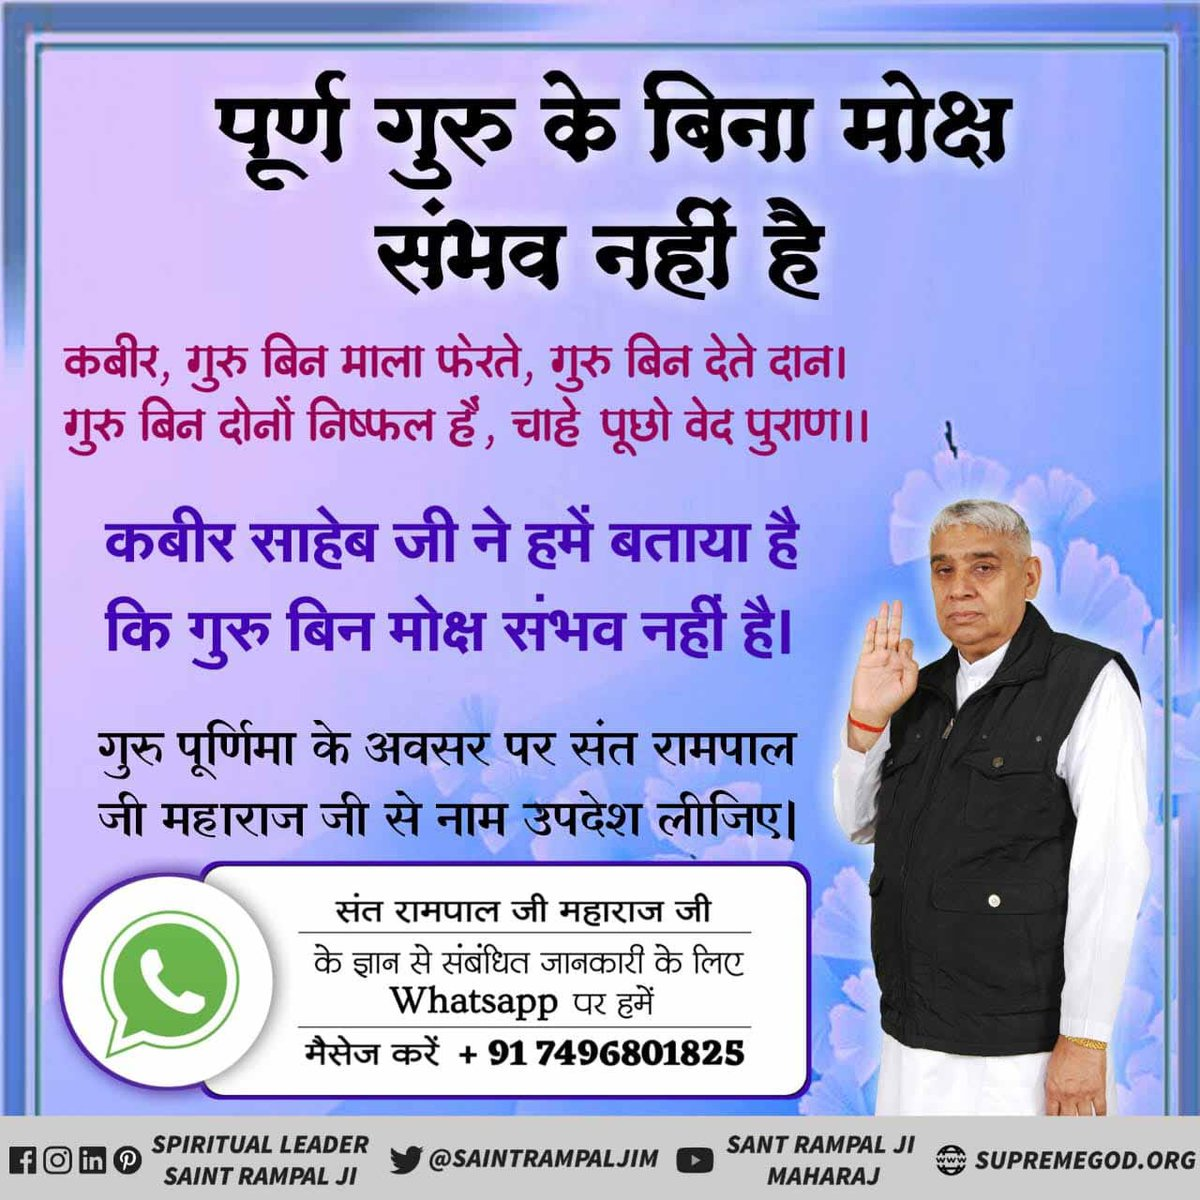 #FridayThoughts If one does true worship as instructed by @SaintRampalJiM with complete faith then his disease will get cured guaranteed as well as one gets liberation from the cycle of birth and death and attains complete Salvation.